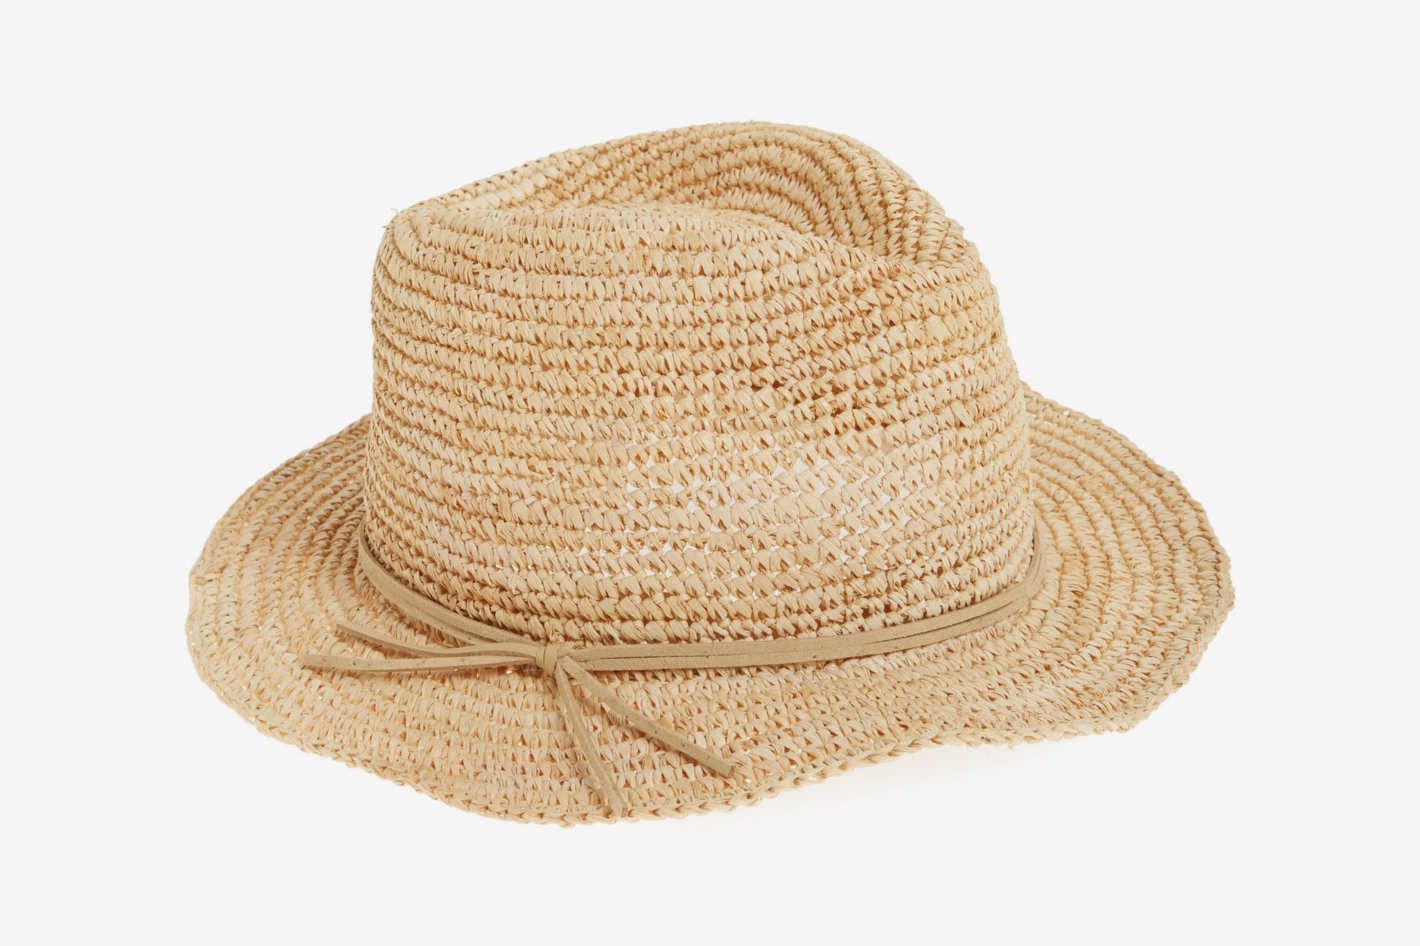 9d3a295308c72 28 Best Sun Hats 2018 — Woven Straw Hats